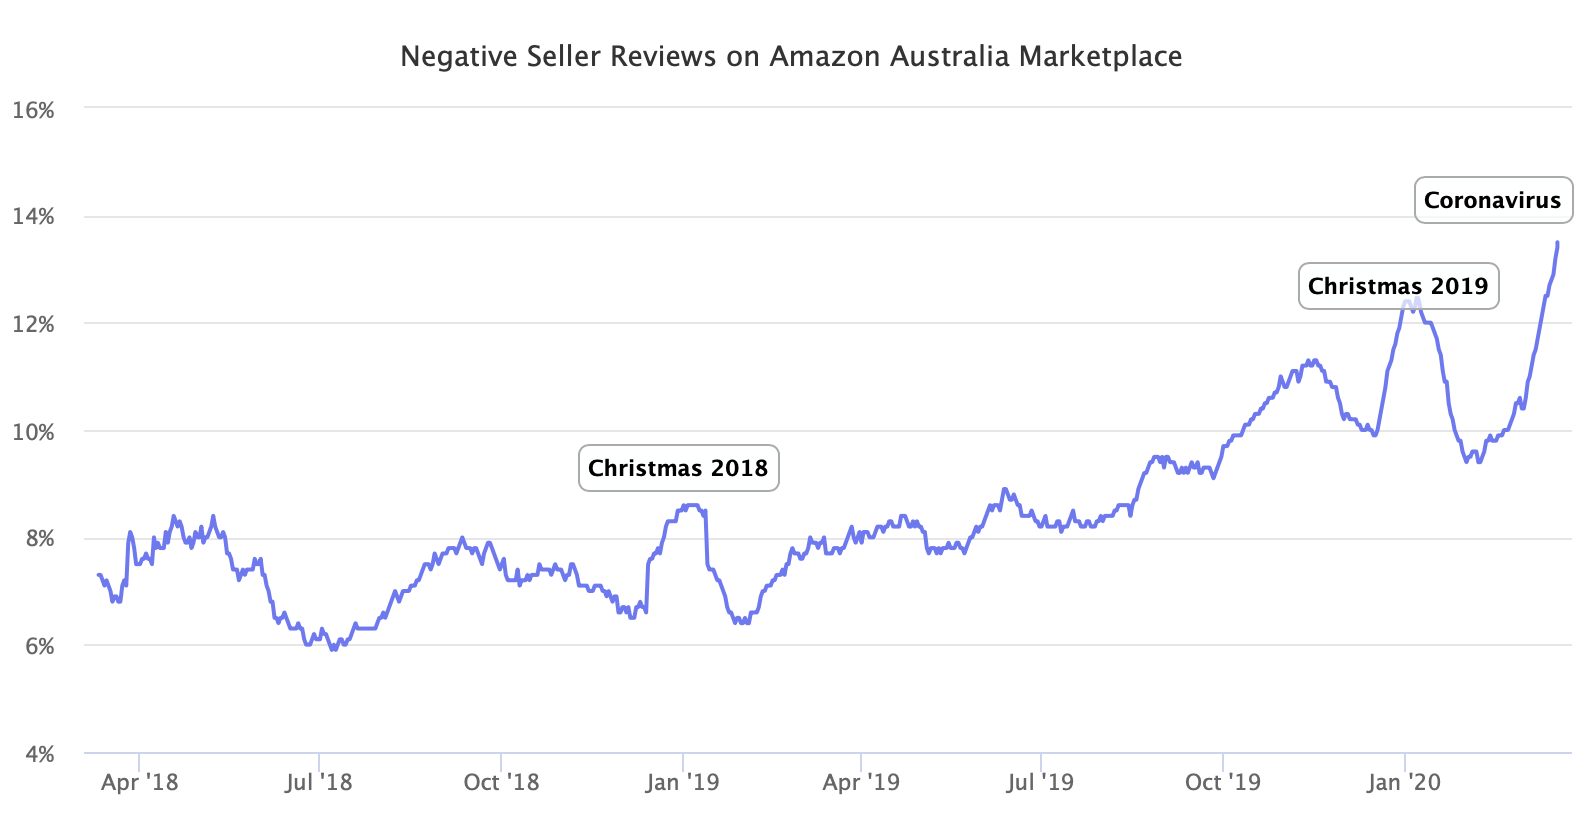 Negative Seller Reviews on Amazon Australia Marketplace